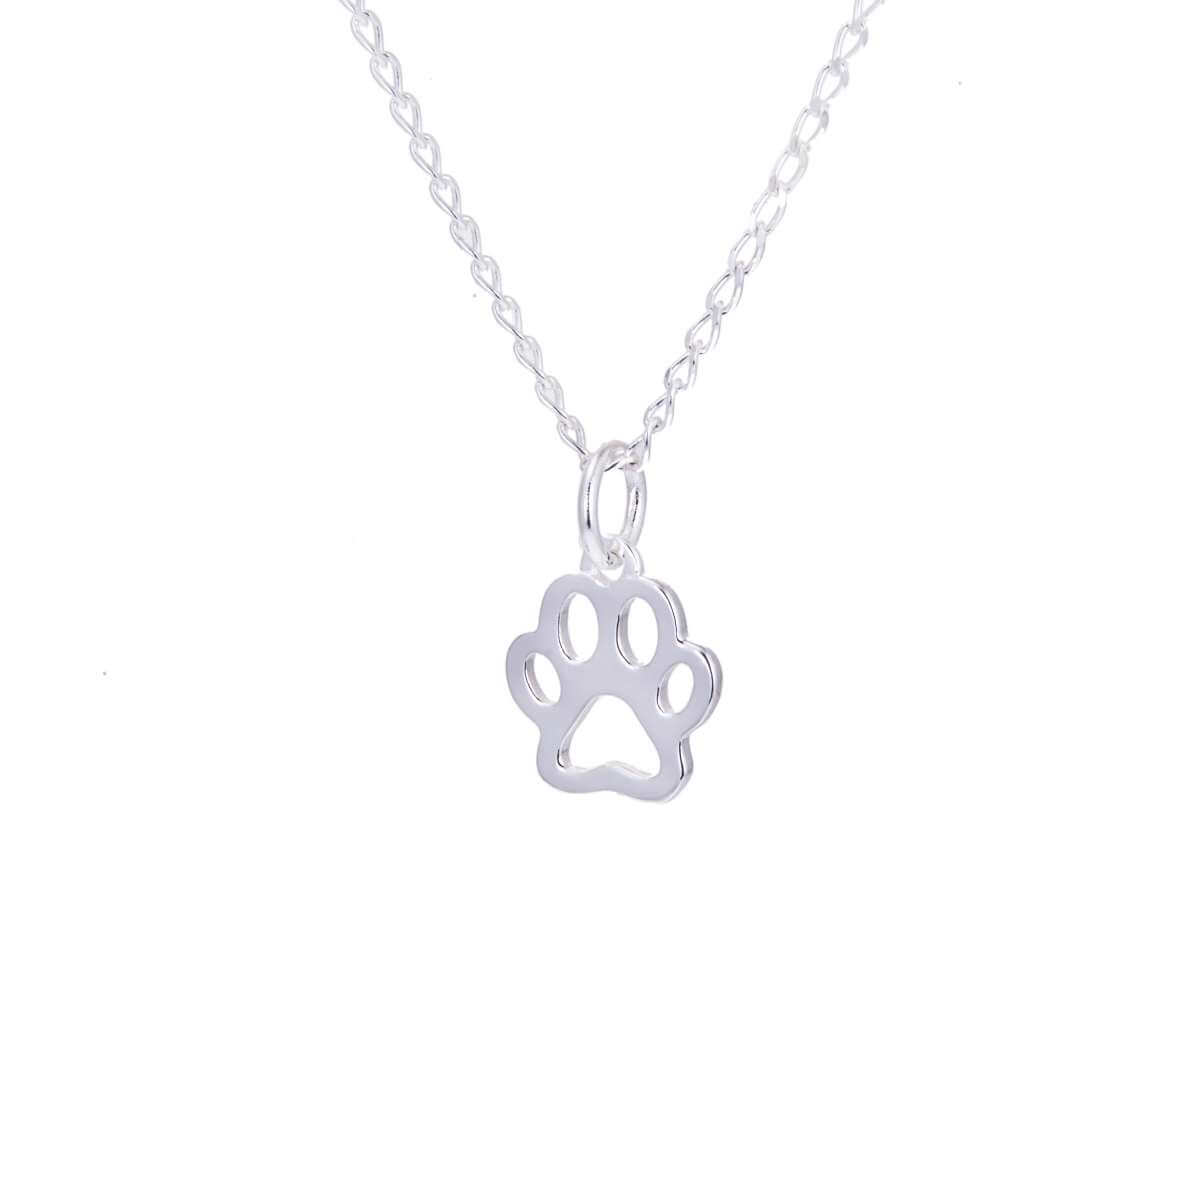 Sterling Silver Pawprint Outline Necklace 14 - 22 Inches